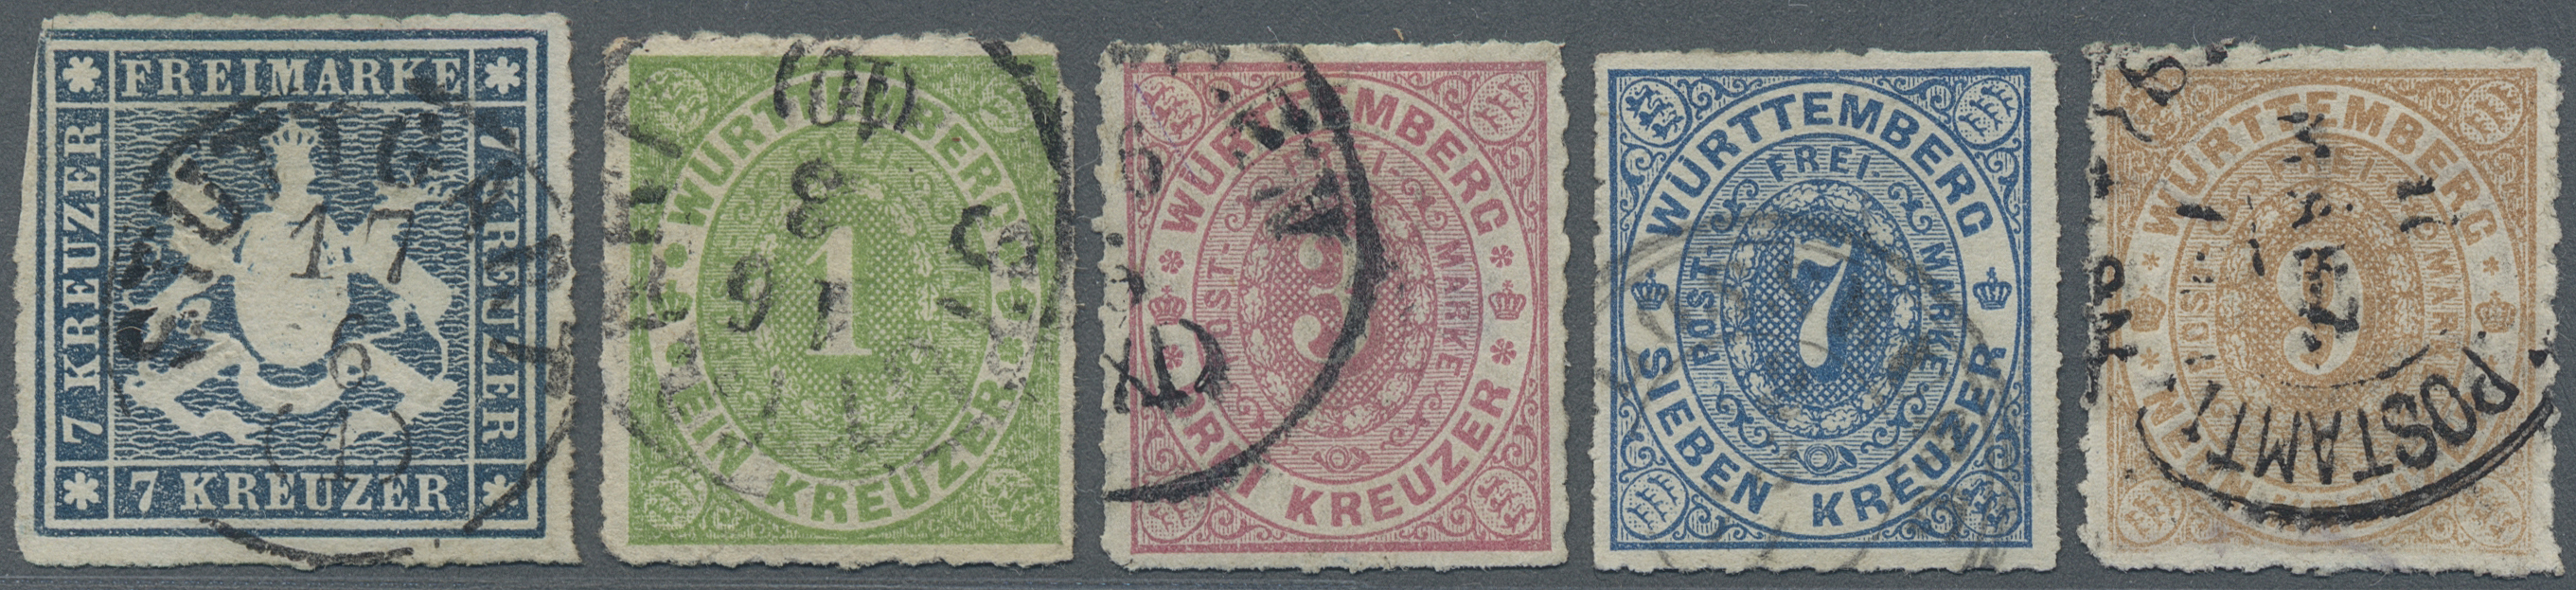 Lot 36316 - Württemberg - Marken und Briefe  -  Auktionshaus Christoph Gärtner GmbH & Co. KG Sale #44 Collections Germany